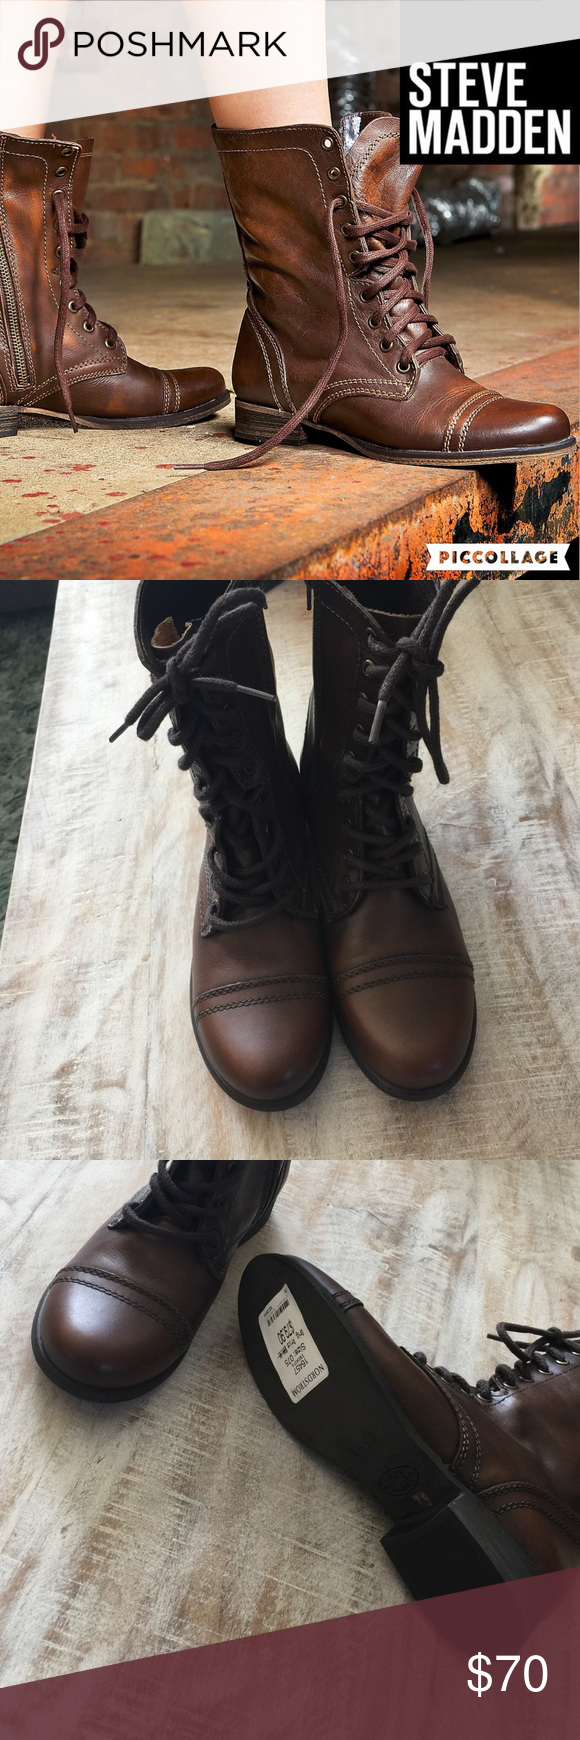 NWT Steve Madden Troopa Boot/Brown/7.5 Hot for Fall!  Steve Madden Troopa combat boot in Brown leather is the go-to boot for Fall and Winter!  Lace up style with interior zippers for easy on/off. 1 in heel height, 7.5 in shaft height, 11.5 in circumference.  NWT, no box. no trades/lowball offers. Steve Madden Shoes Combat & Moto Boots